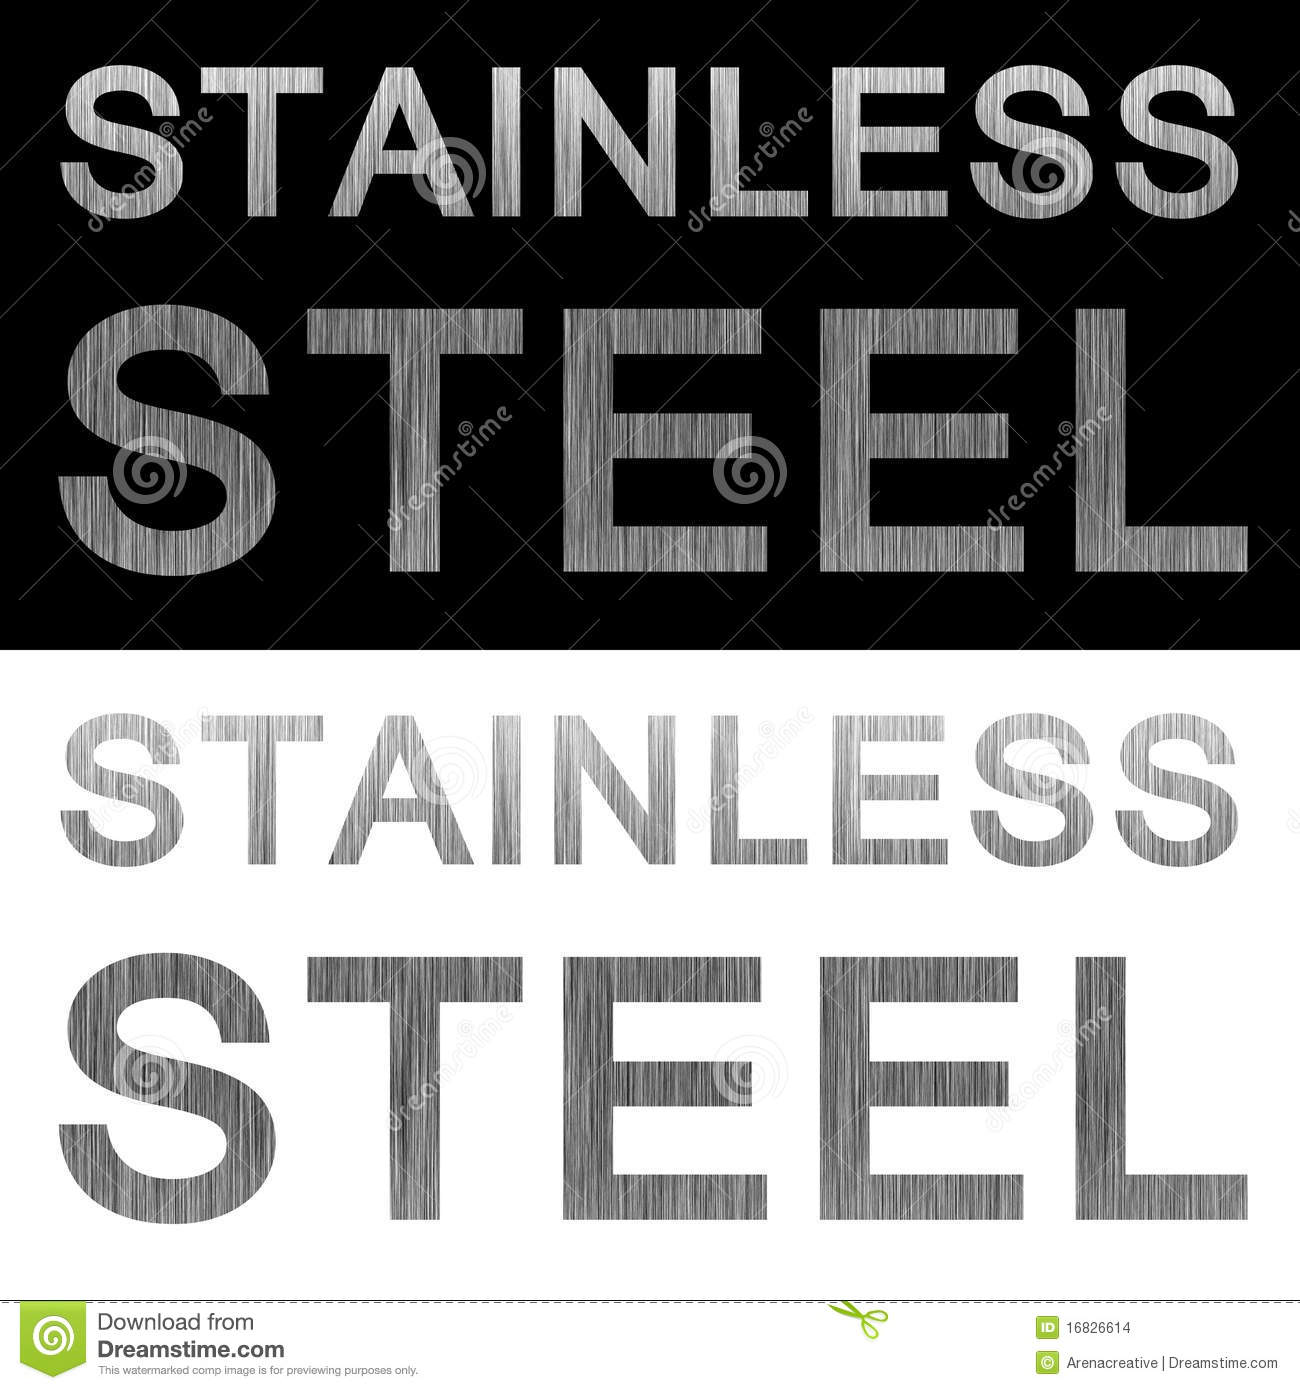 Metal texture labels isolated over black and white backgrounds